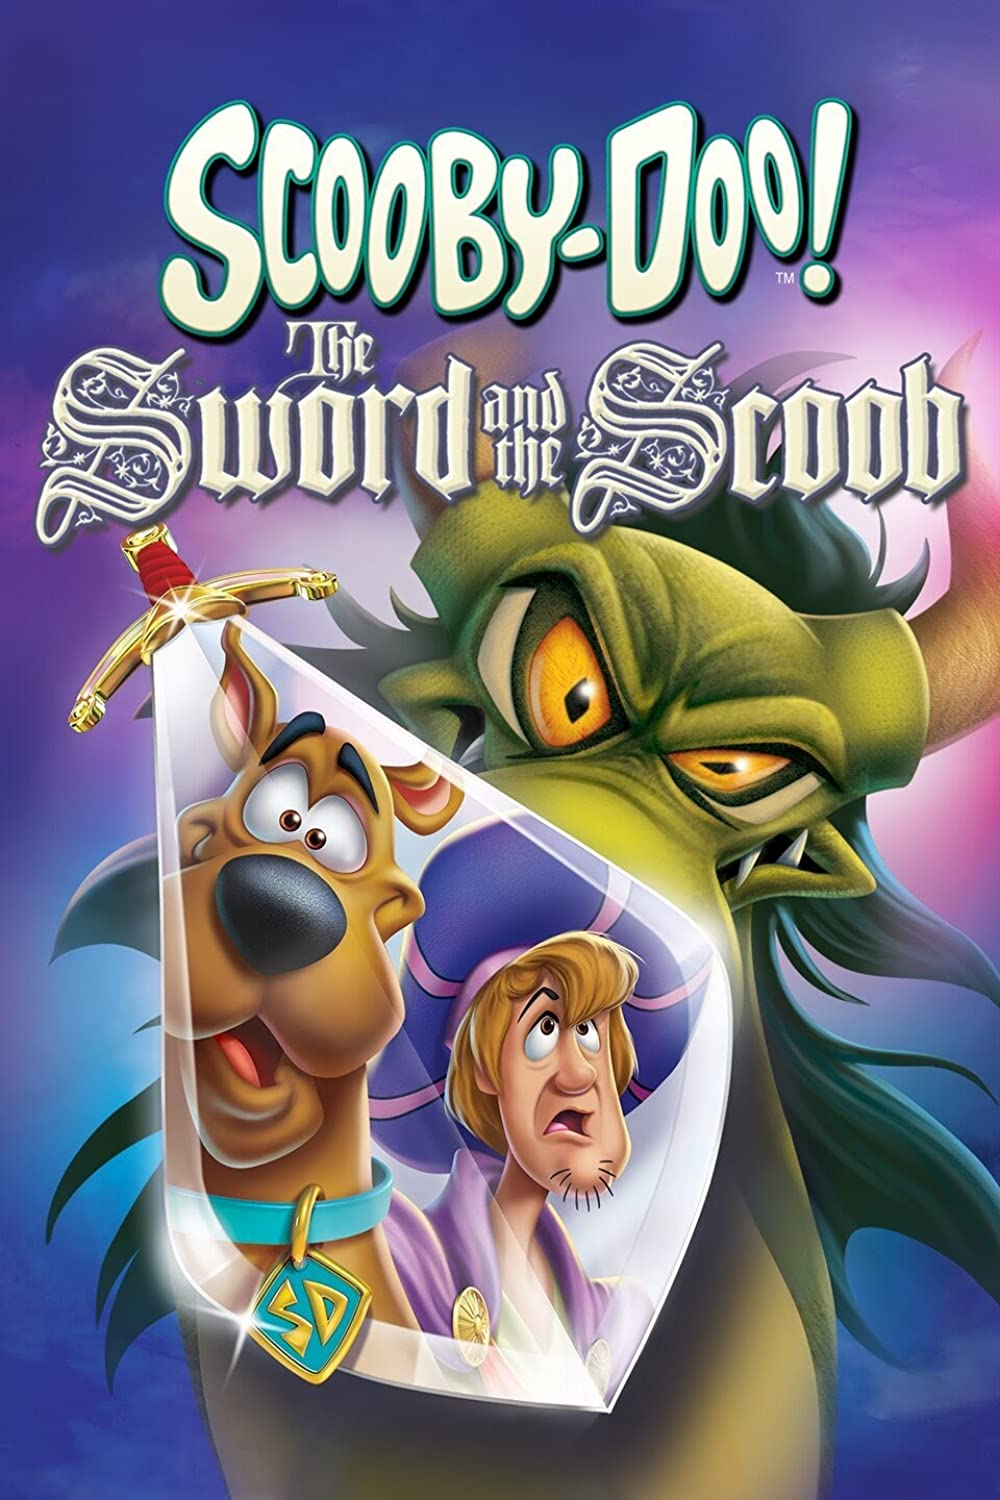 Watch Scooby-Doo! The Sword and the Scoob Online